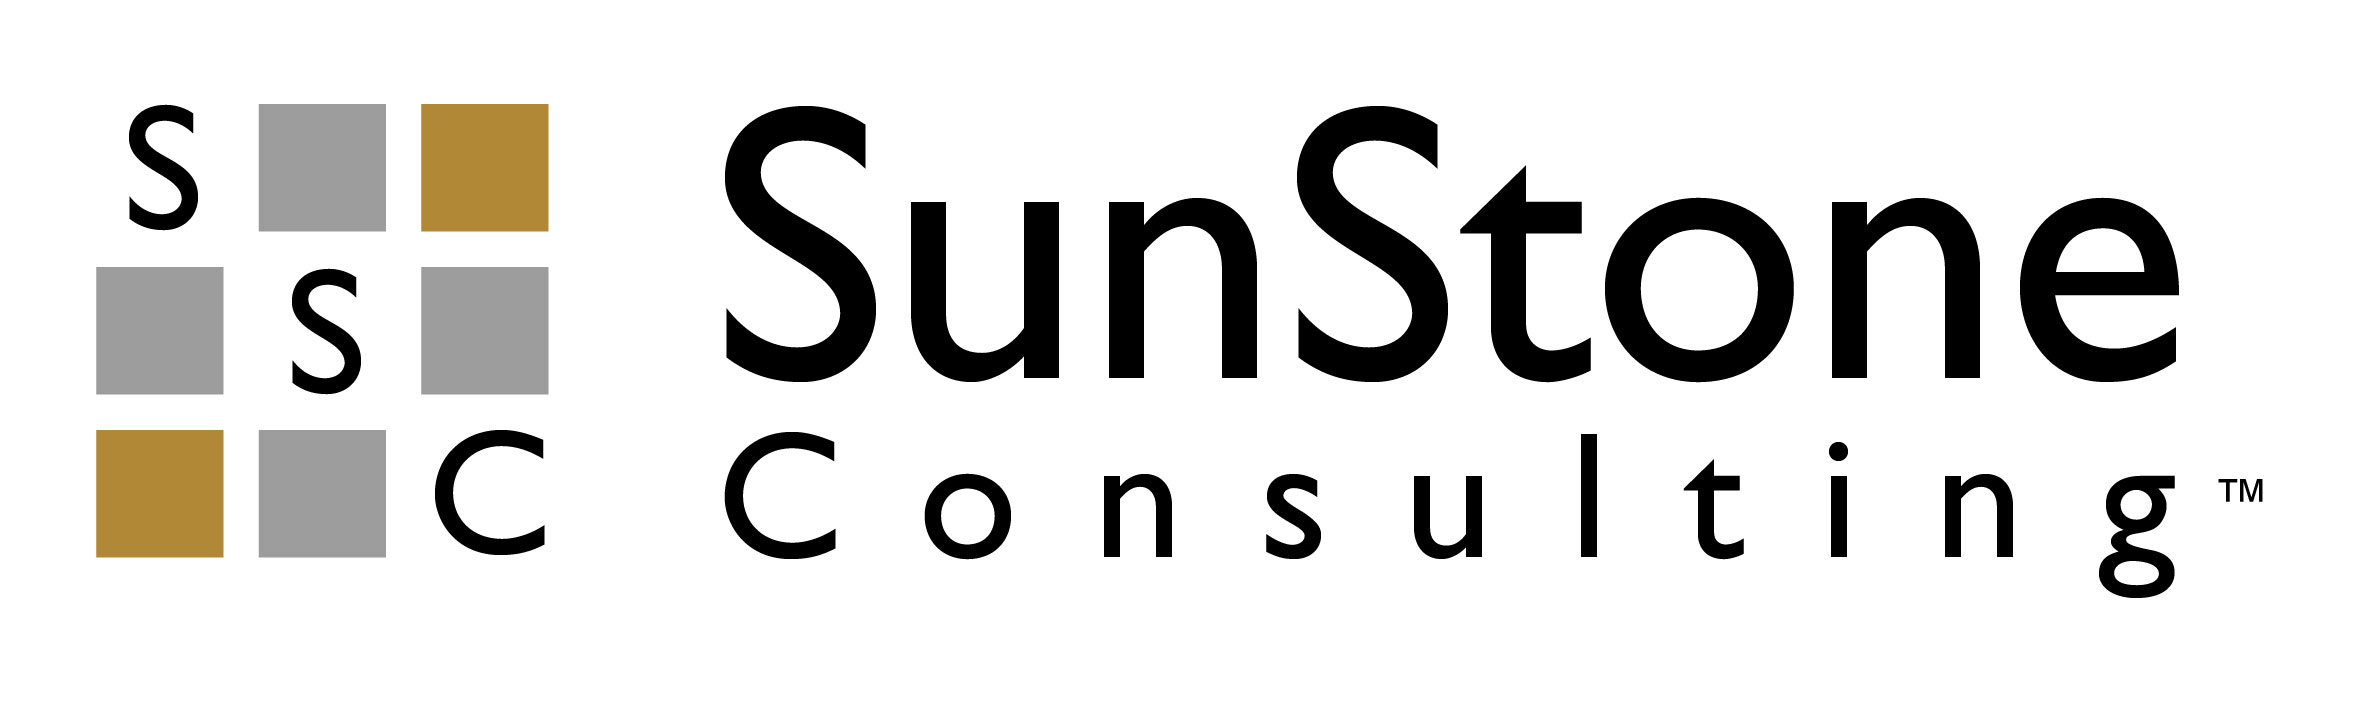 Sunstone Consulting Logo color